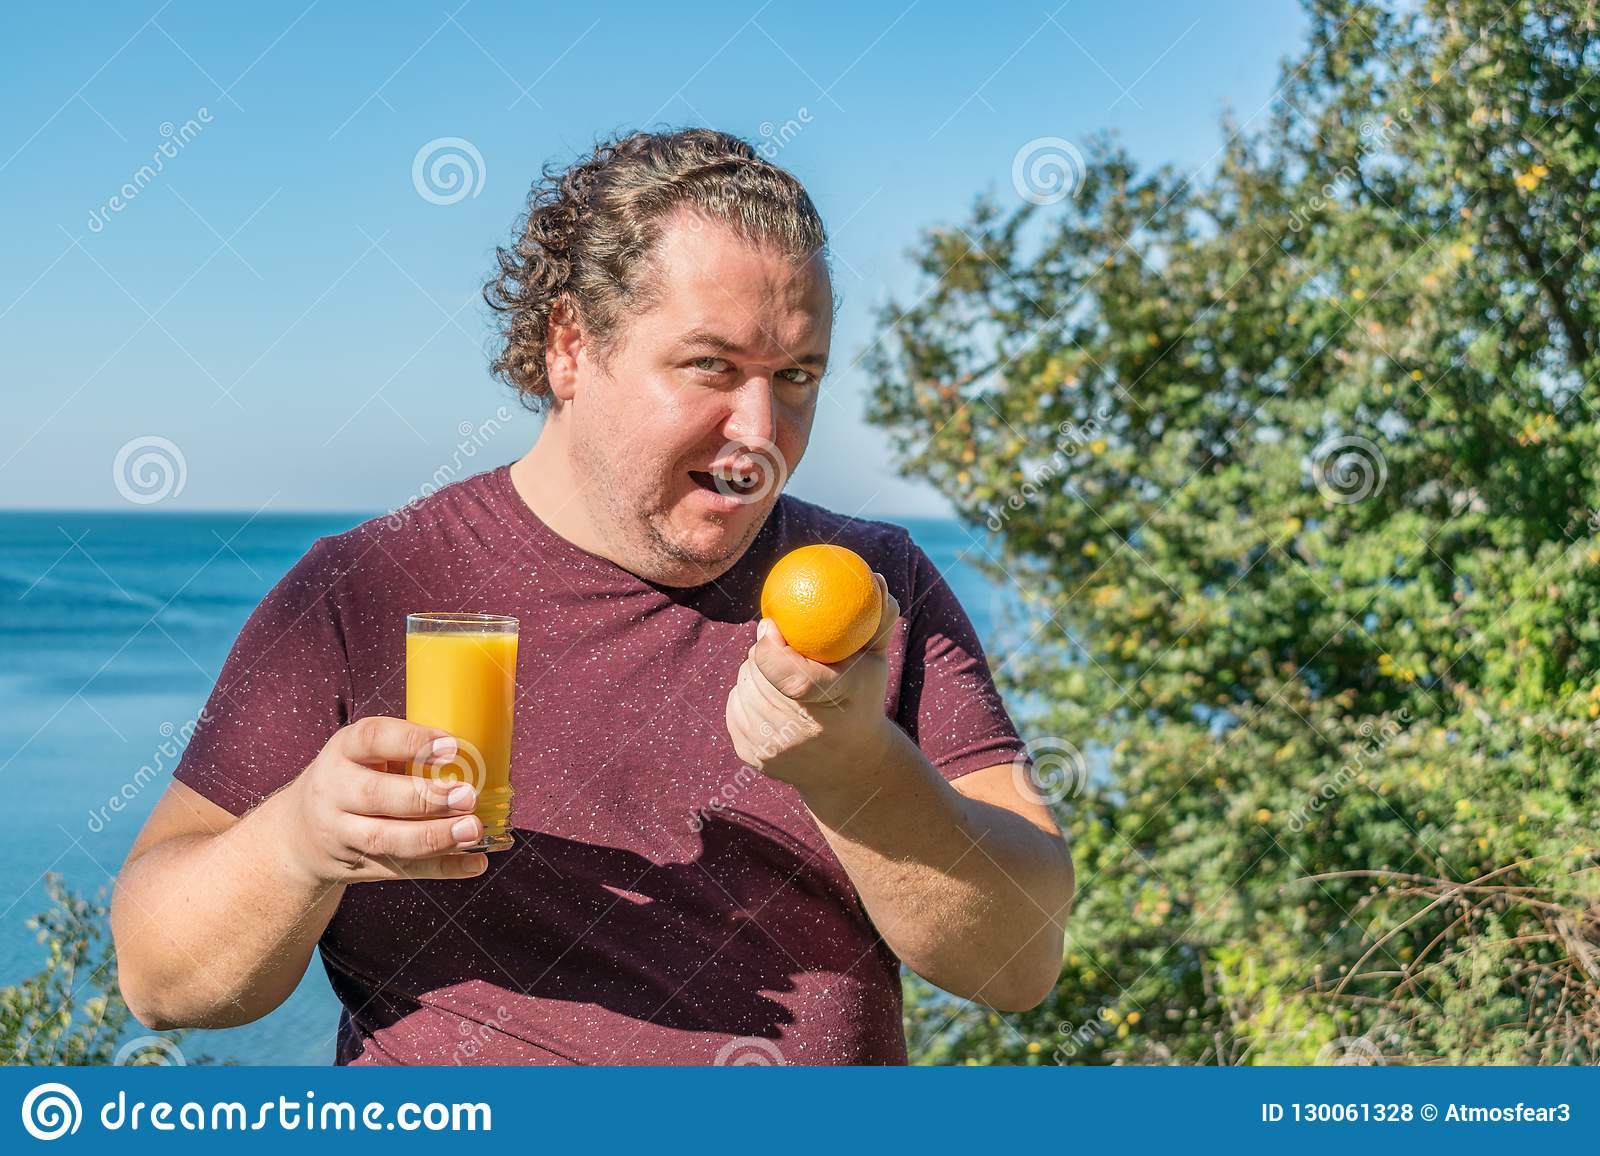 Funny fat man on the ocean drinking juice and eating fruits. Vacation, weight loss and healthy eating